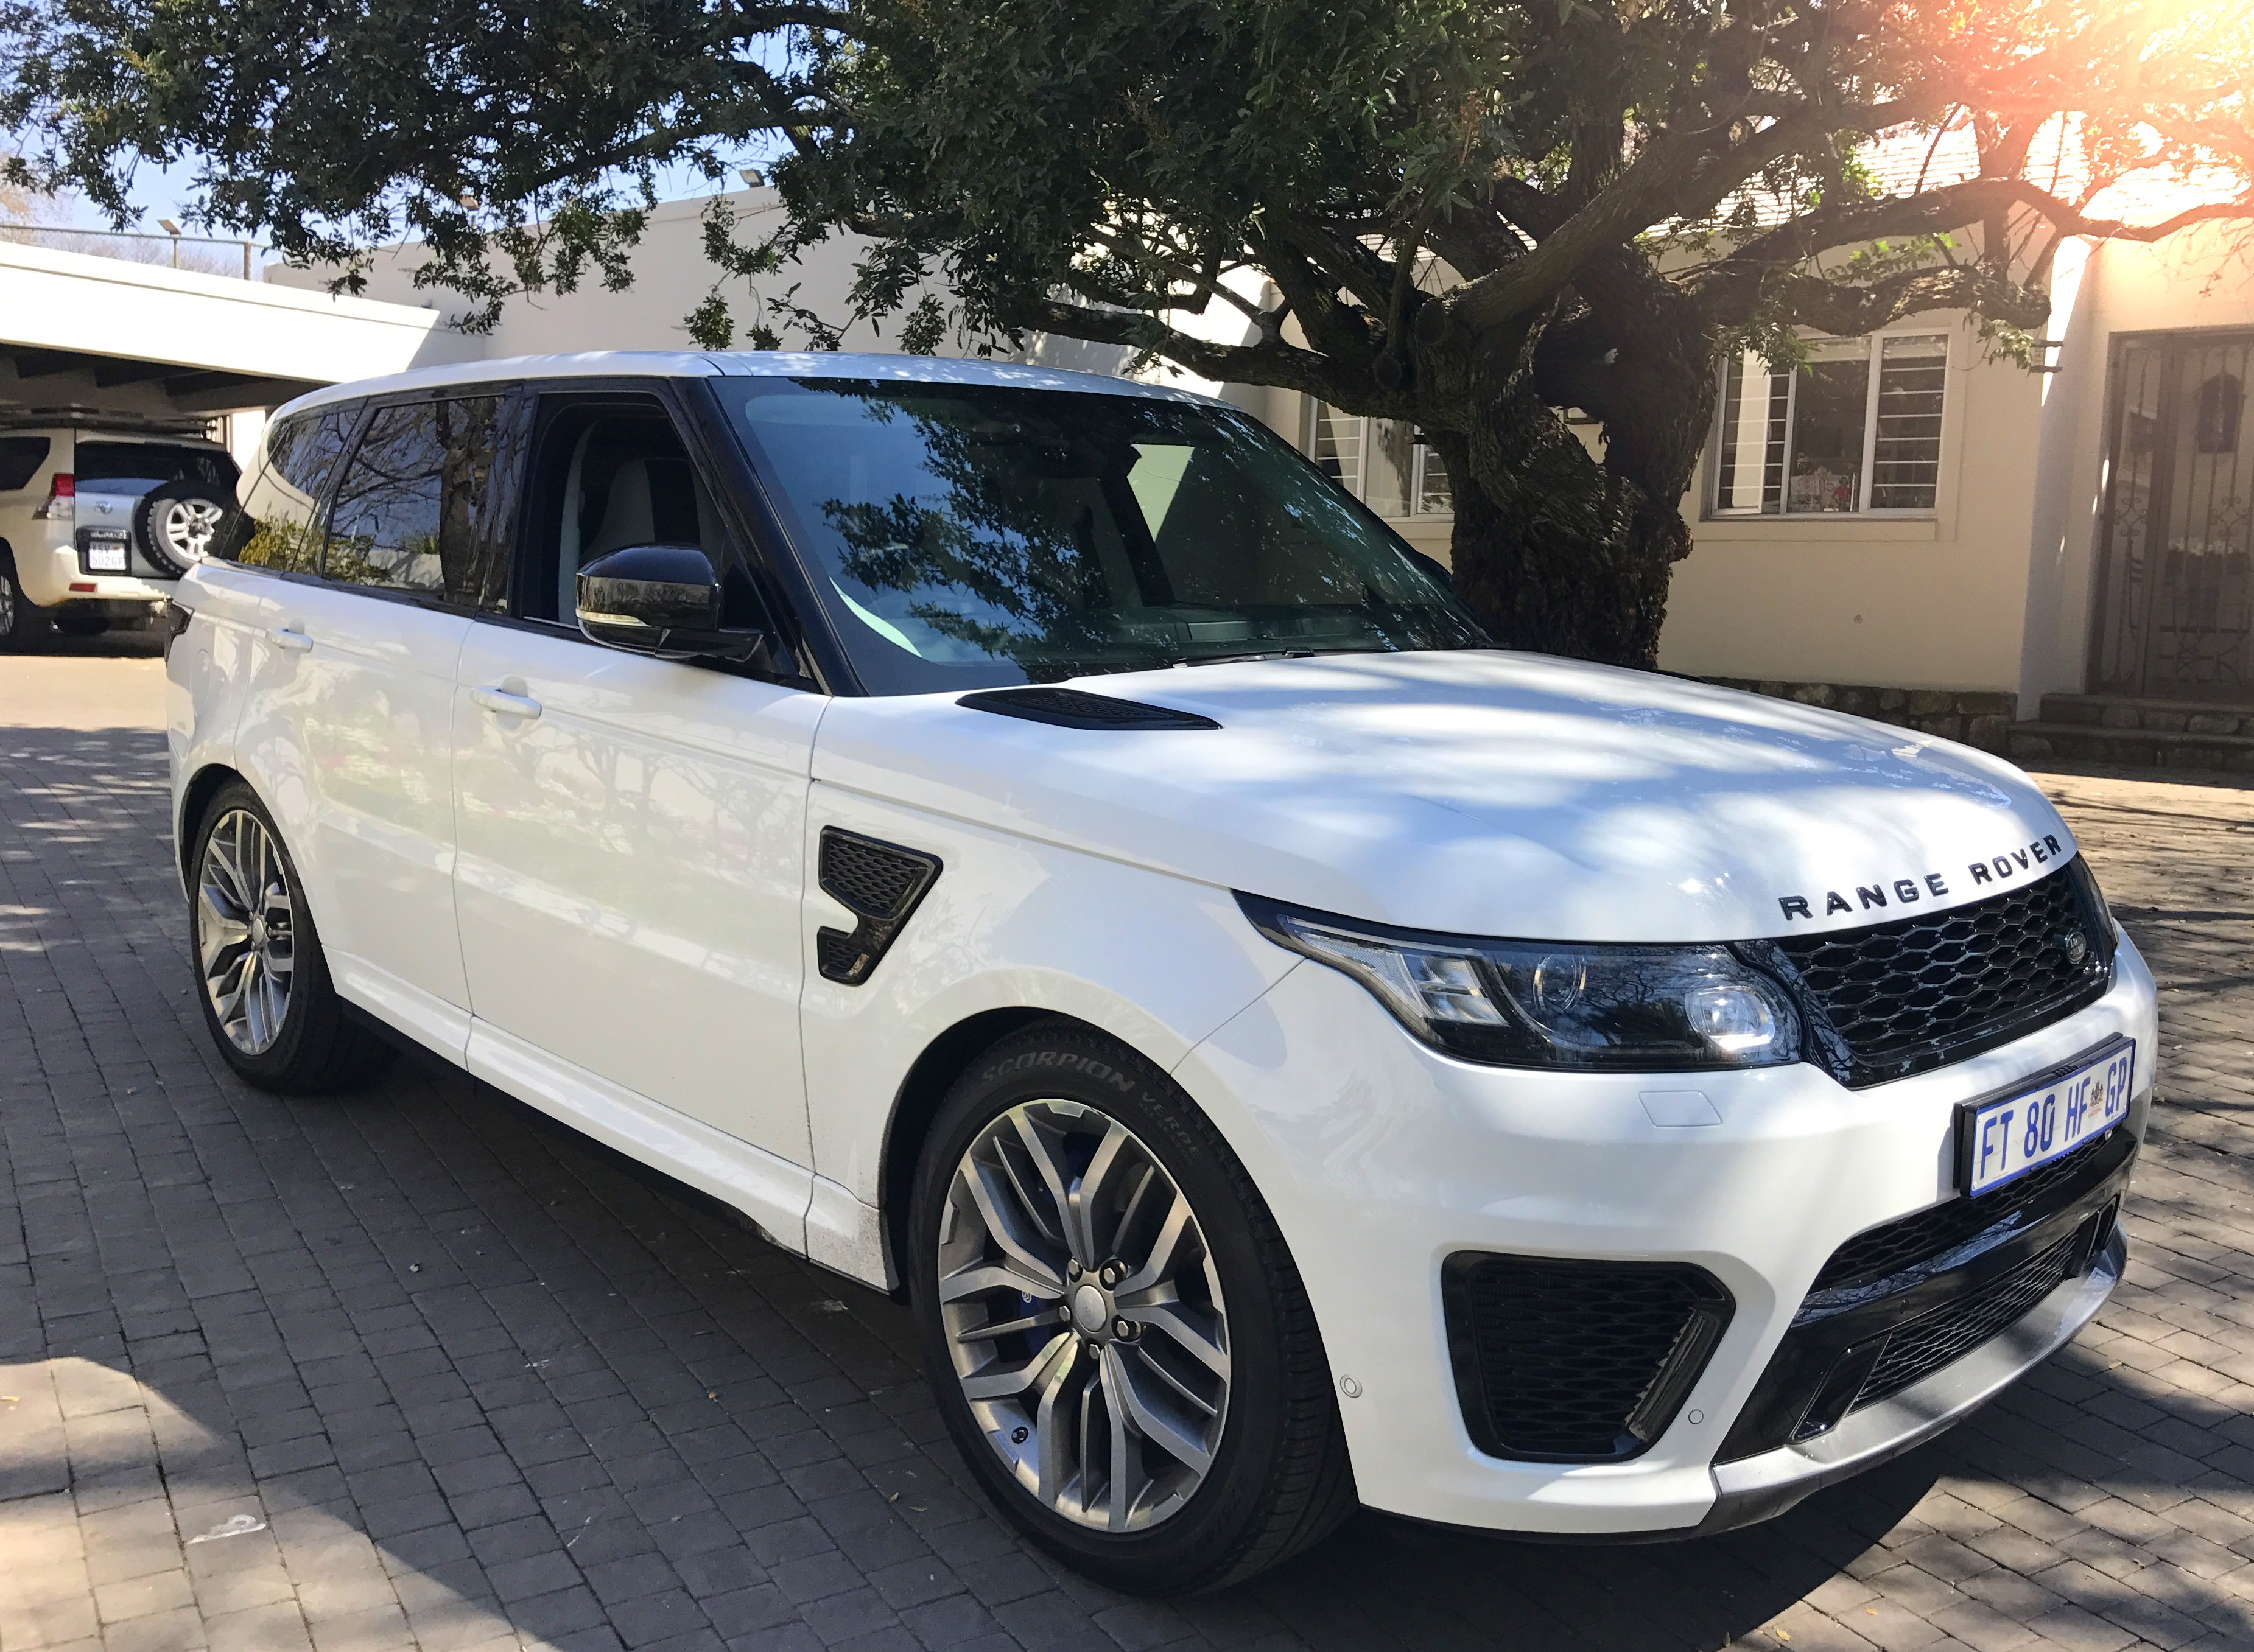 If You Are Not Aware About The Svr Version Would Think It Is A Regular Range Rover Besides Badging Styling Identifiers